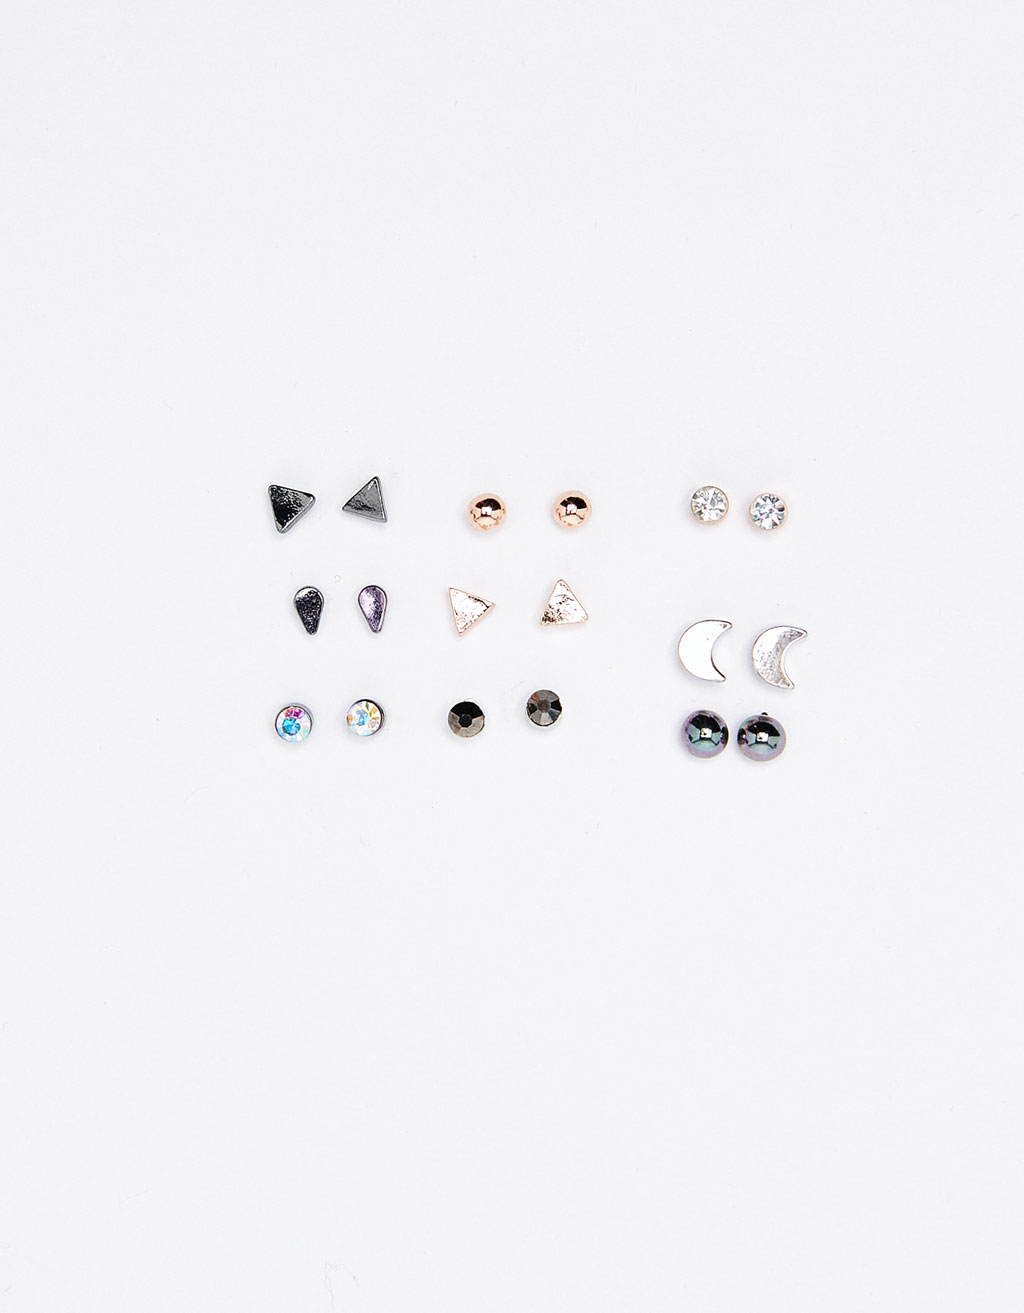 Set of 9 minimalist earrings